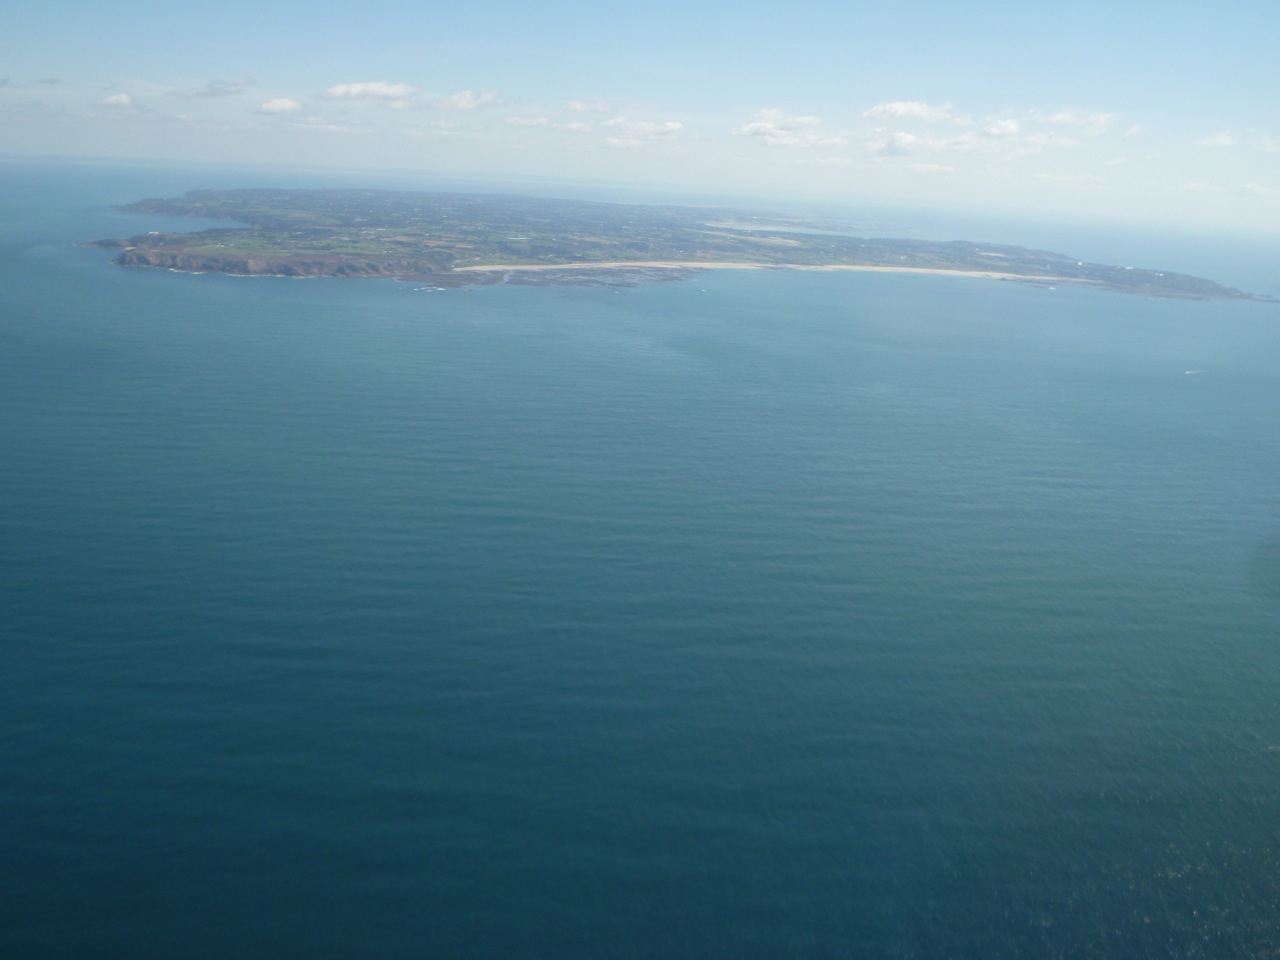 Sea Kayaking in the Channel Islands: Some more aerial shots